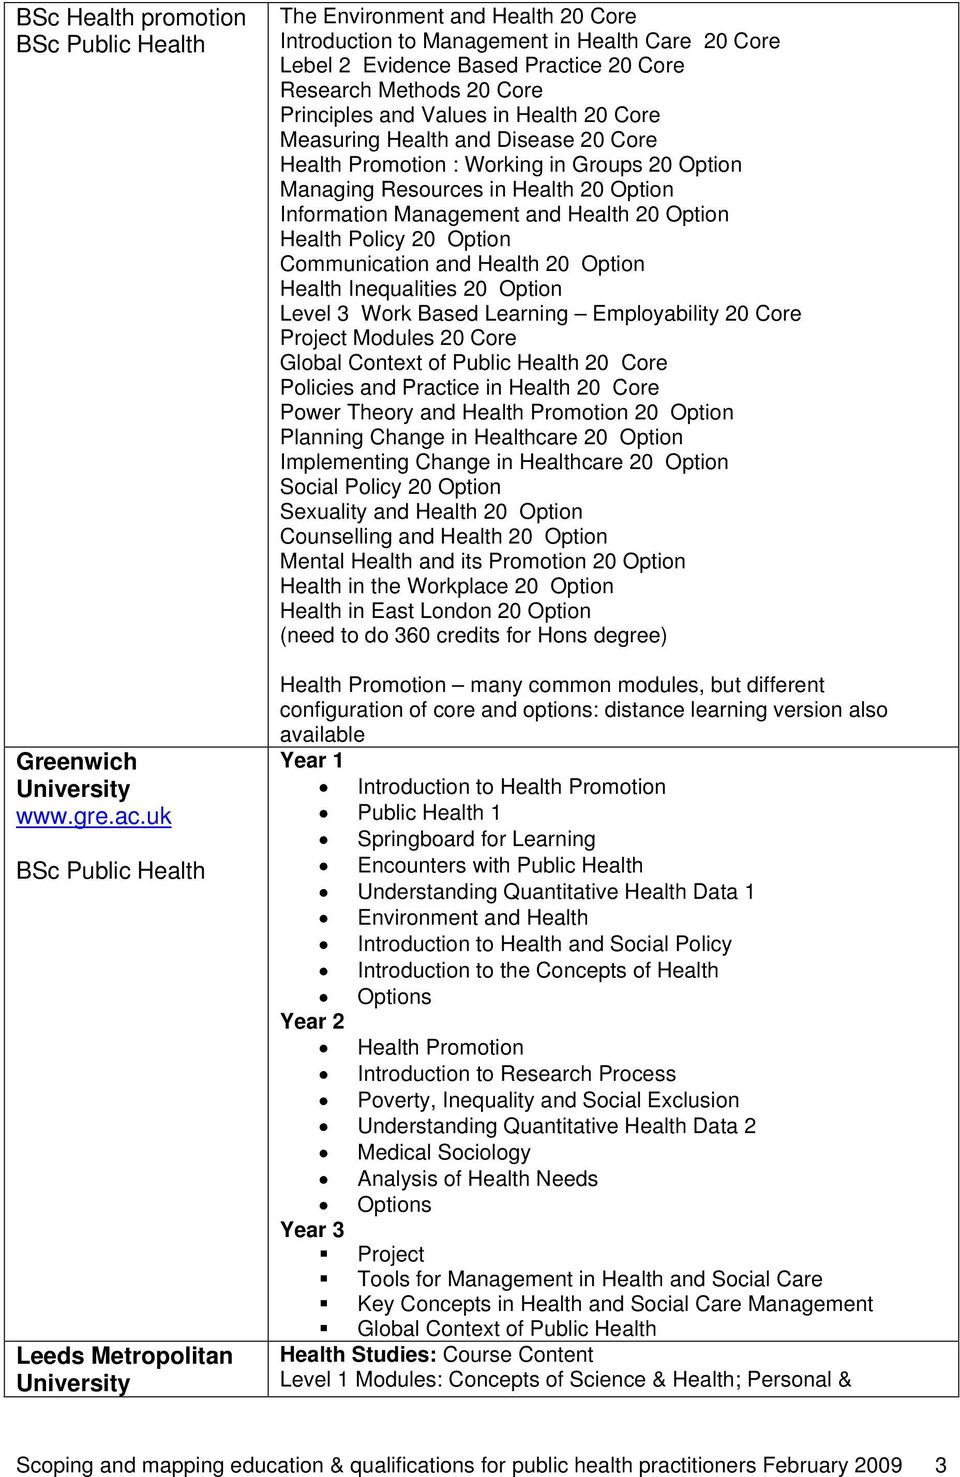 Health 20 Core Measuring Health and Disease 20 Core Health Promotion : Working in Groups 20 Option Managing Resources in Health 20 Option Information Management and Health 20 Option Health Policy 20